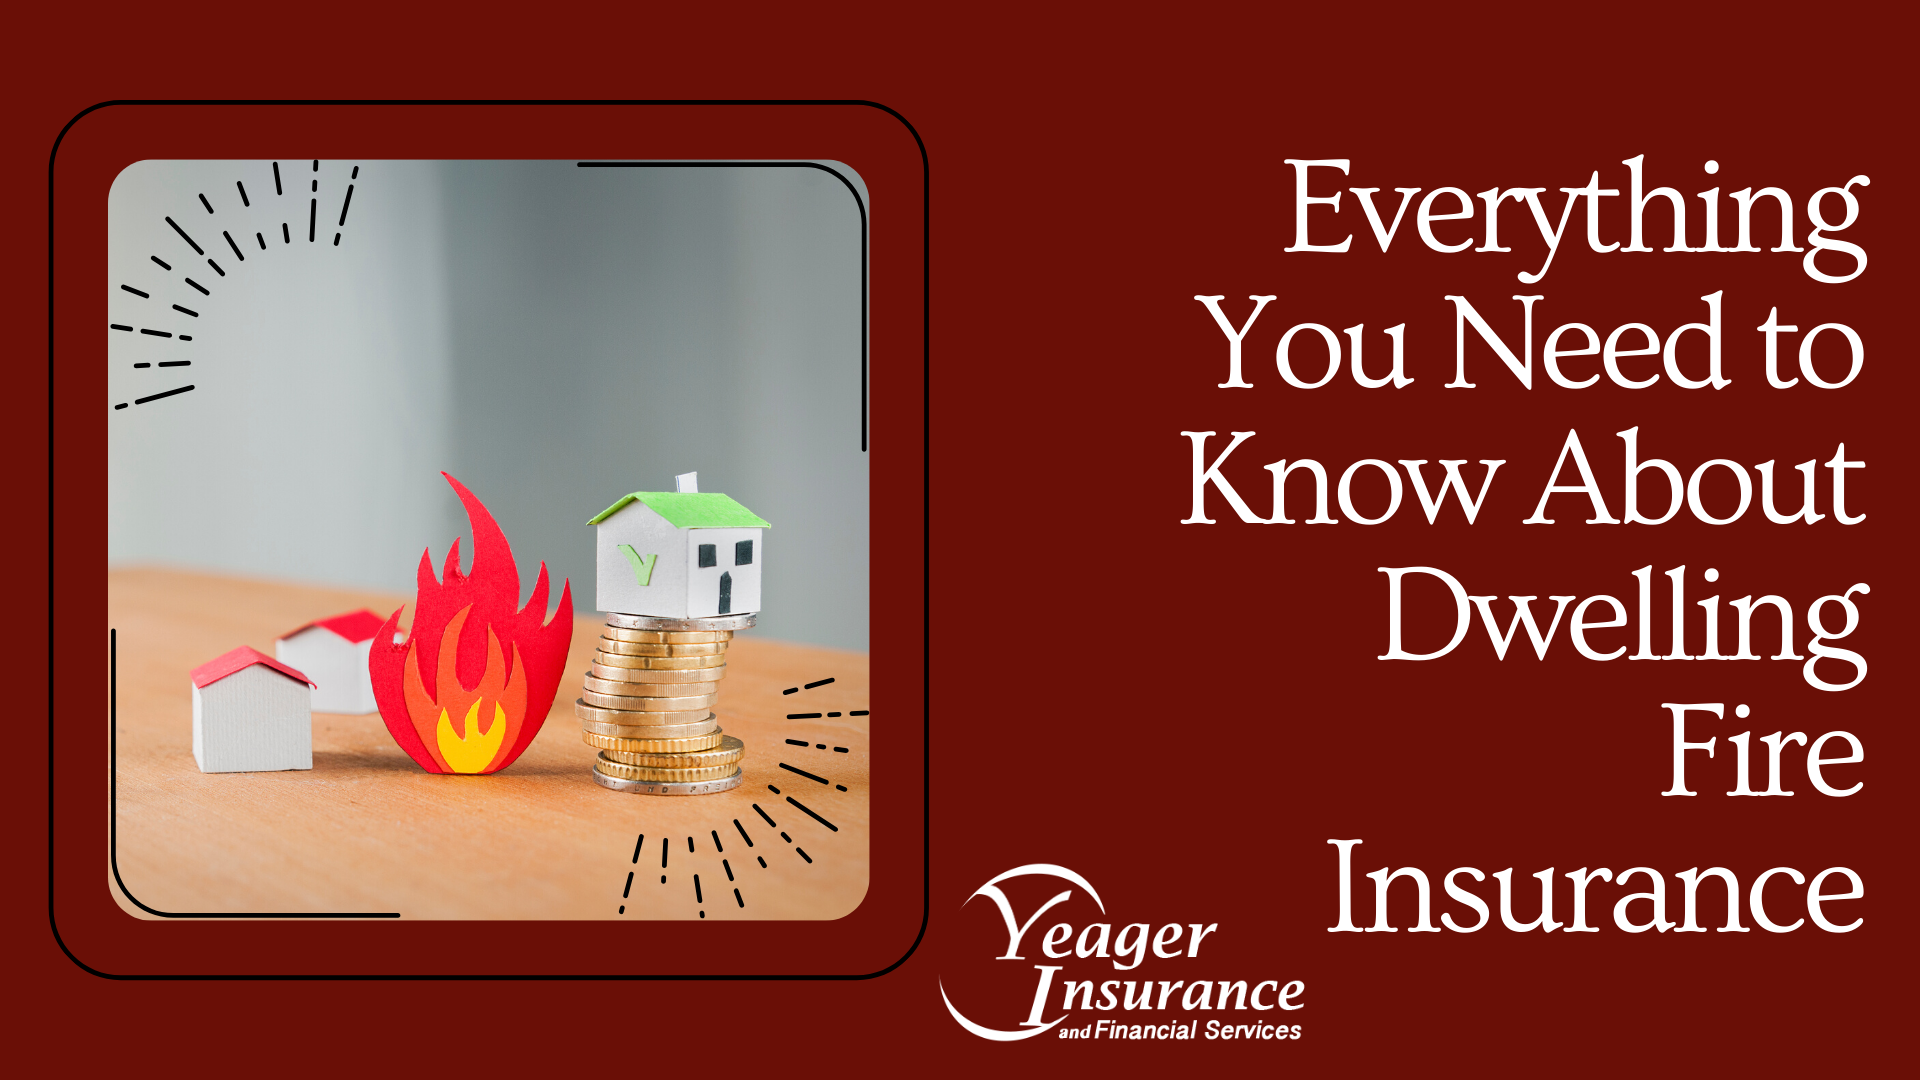 EVERYTHING YOU NEED TO KNOW ABOUT DWELLING FIRE INSURANCE IN PUTNAM COUNTY, WEST VIRGINIA